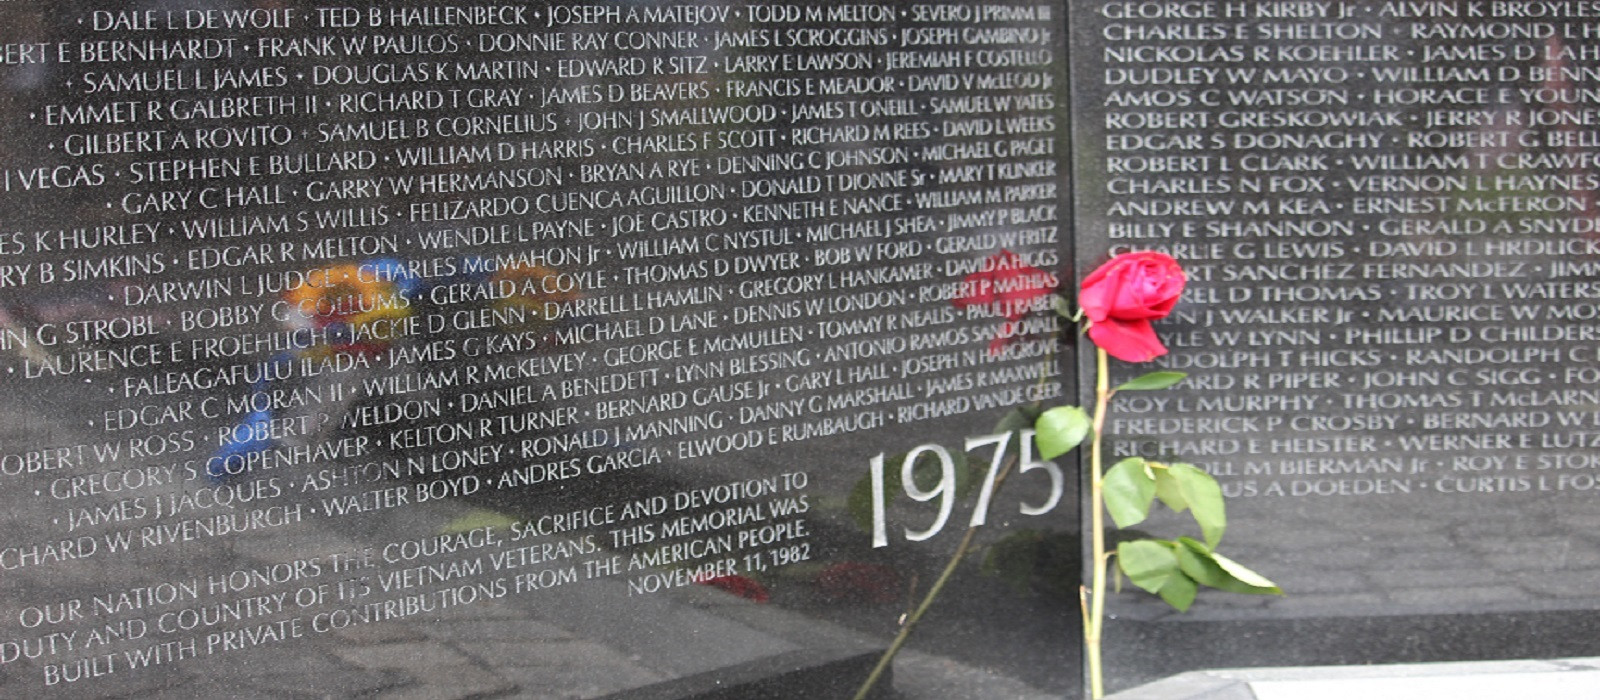 The Vietnam Veterans Memorial/The Wall